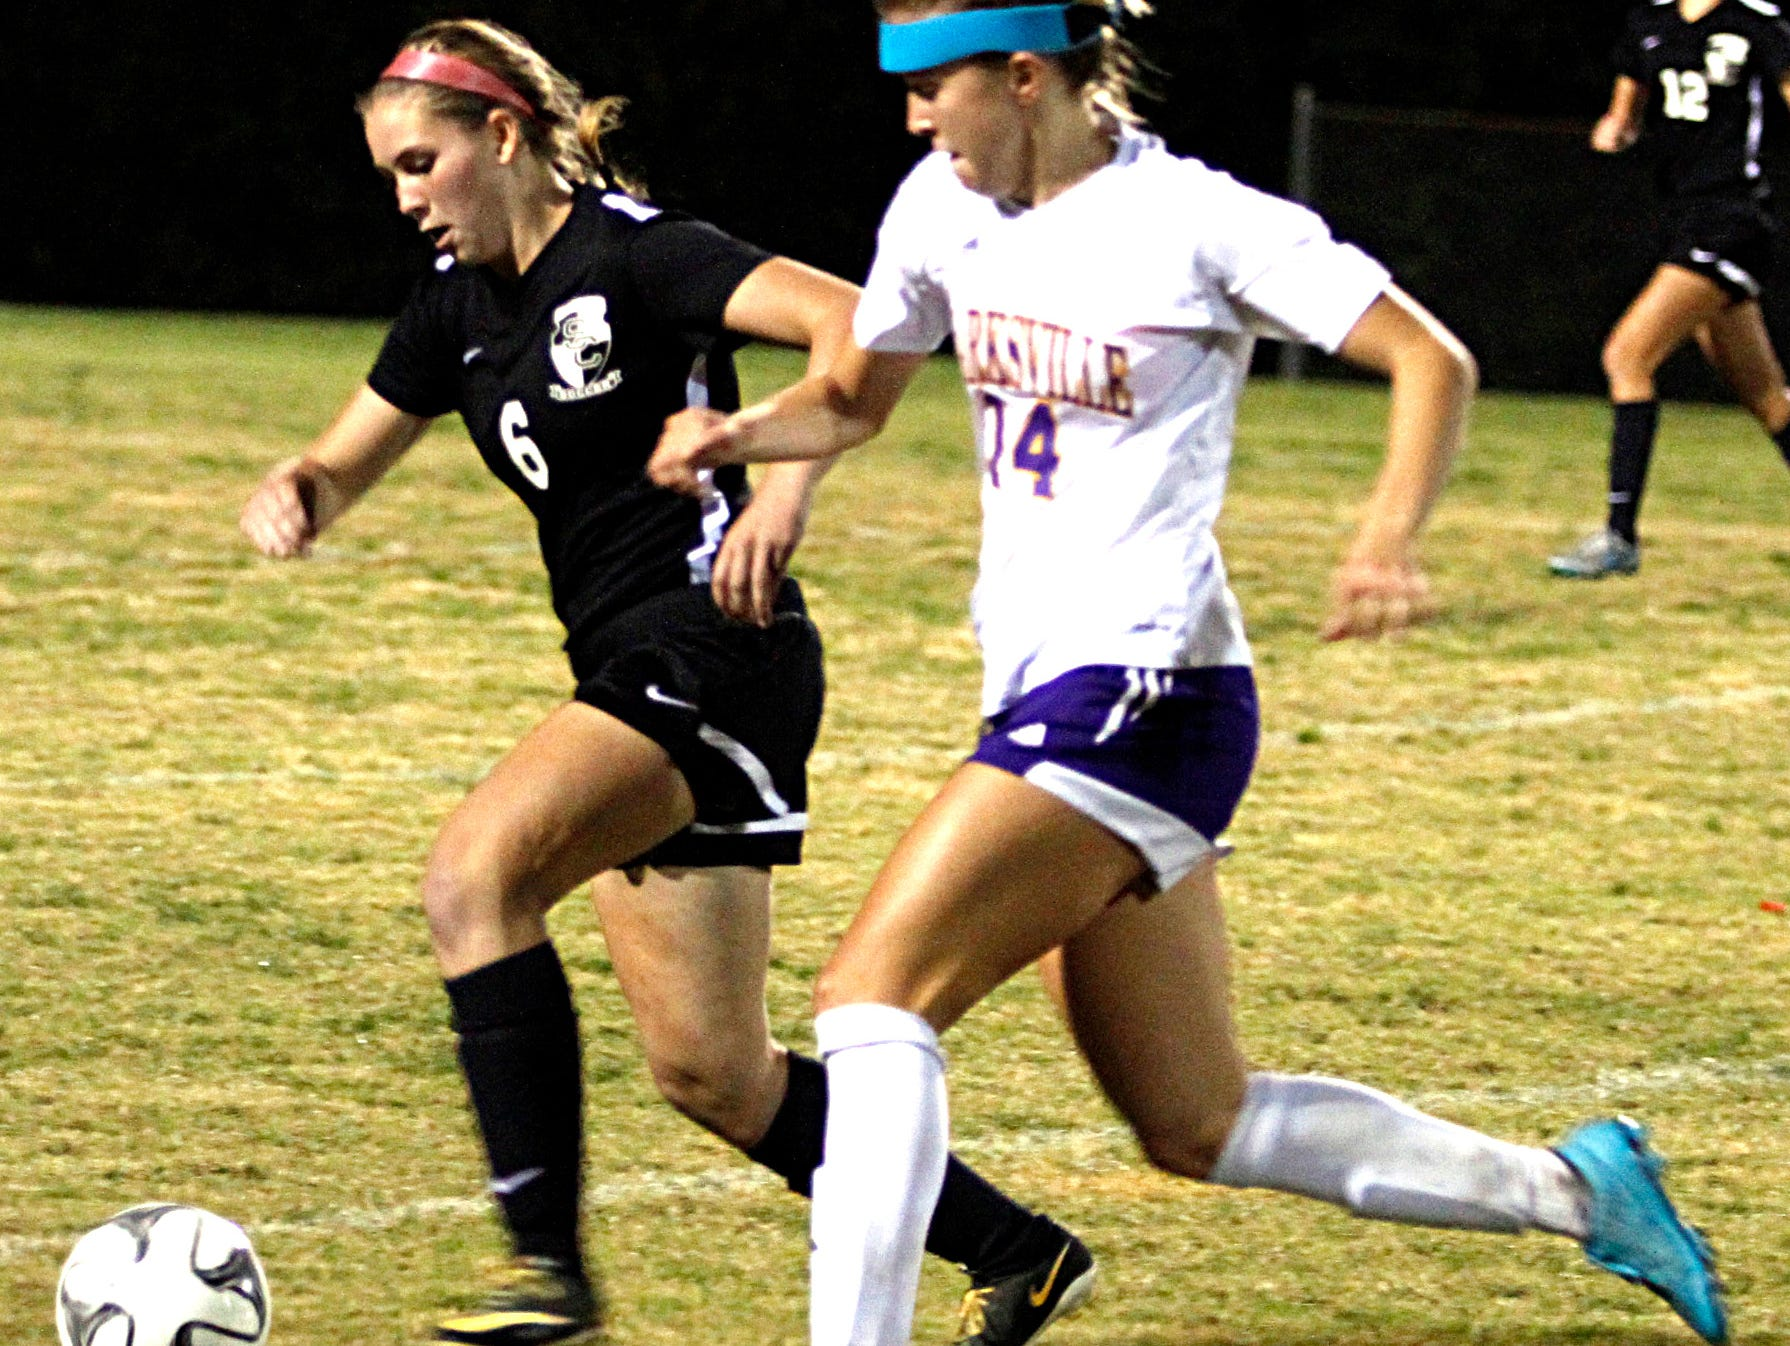 Station Camp High sophomore Victoria Brown battles for possession with Clarksville senior Salera Jordan during the Lady Bison's 2-0 loss in Tuesday evening's Region 5-AAA Tournament semifinal match.